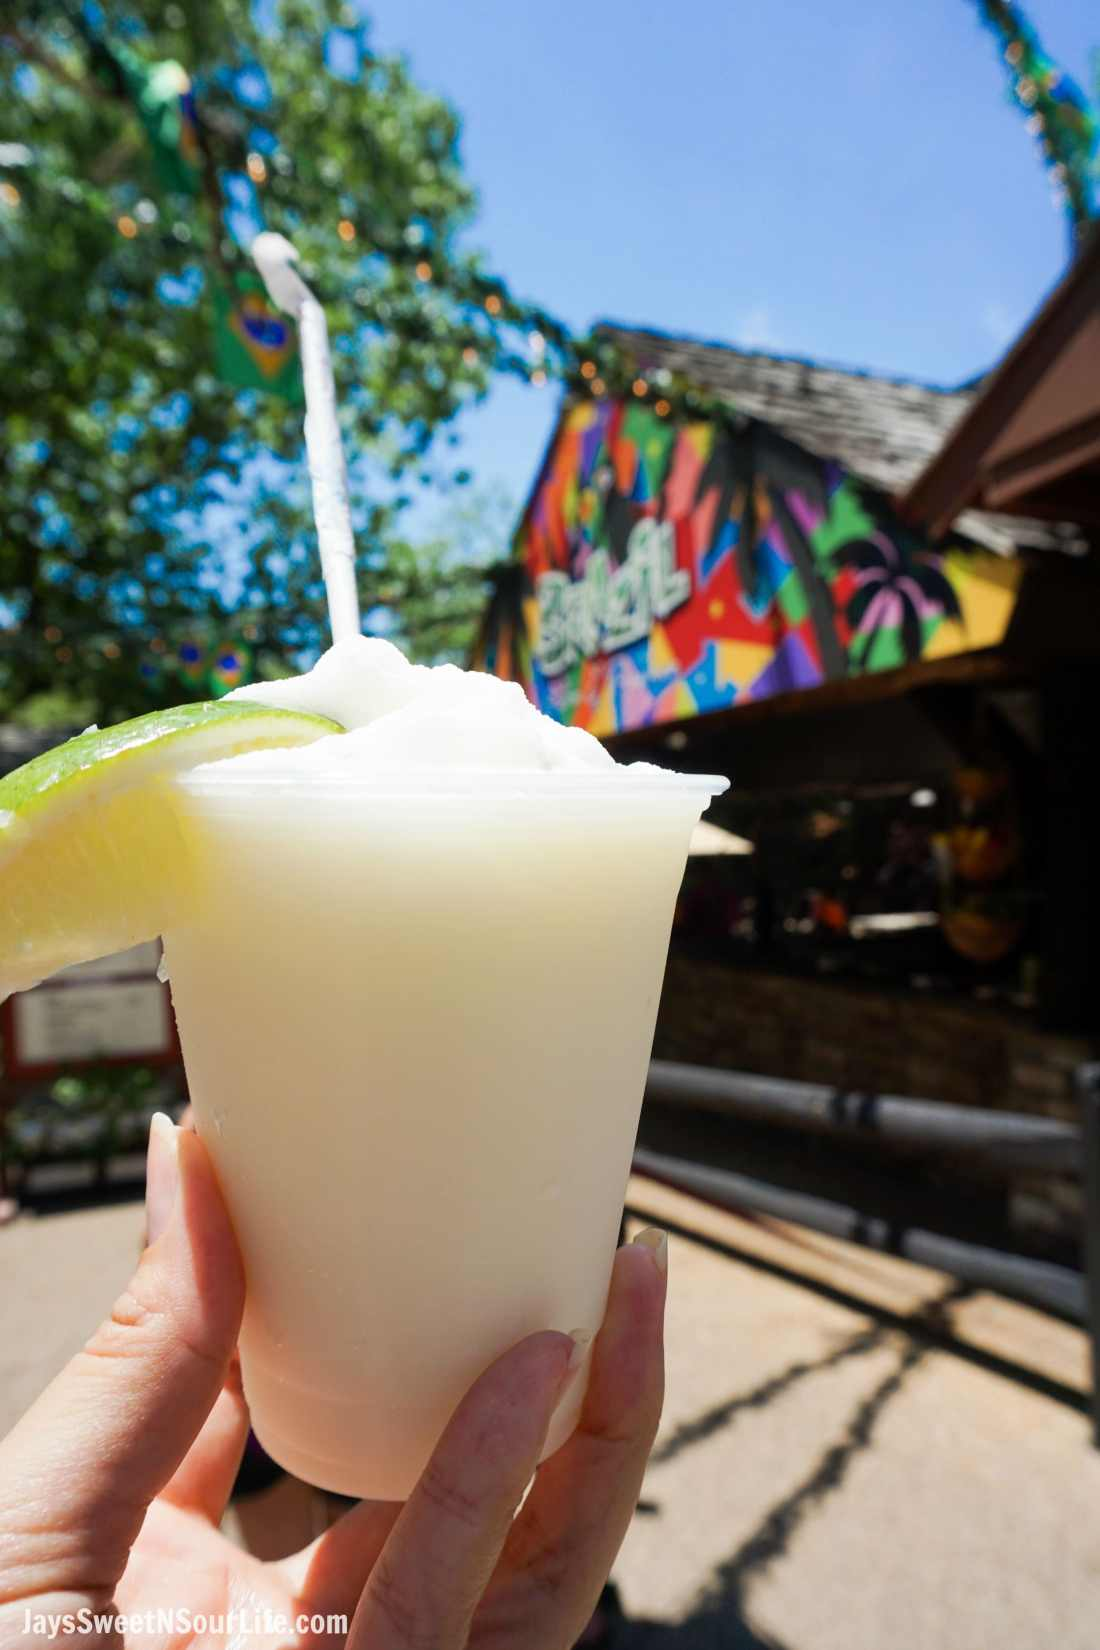 Brazilian Lemonade 2018 Busch Gardens Food and Wine Festival. Food & Wine Festival is from 11 am to close every Friday, Saturday and Sunday, May 25 - July 1.